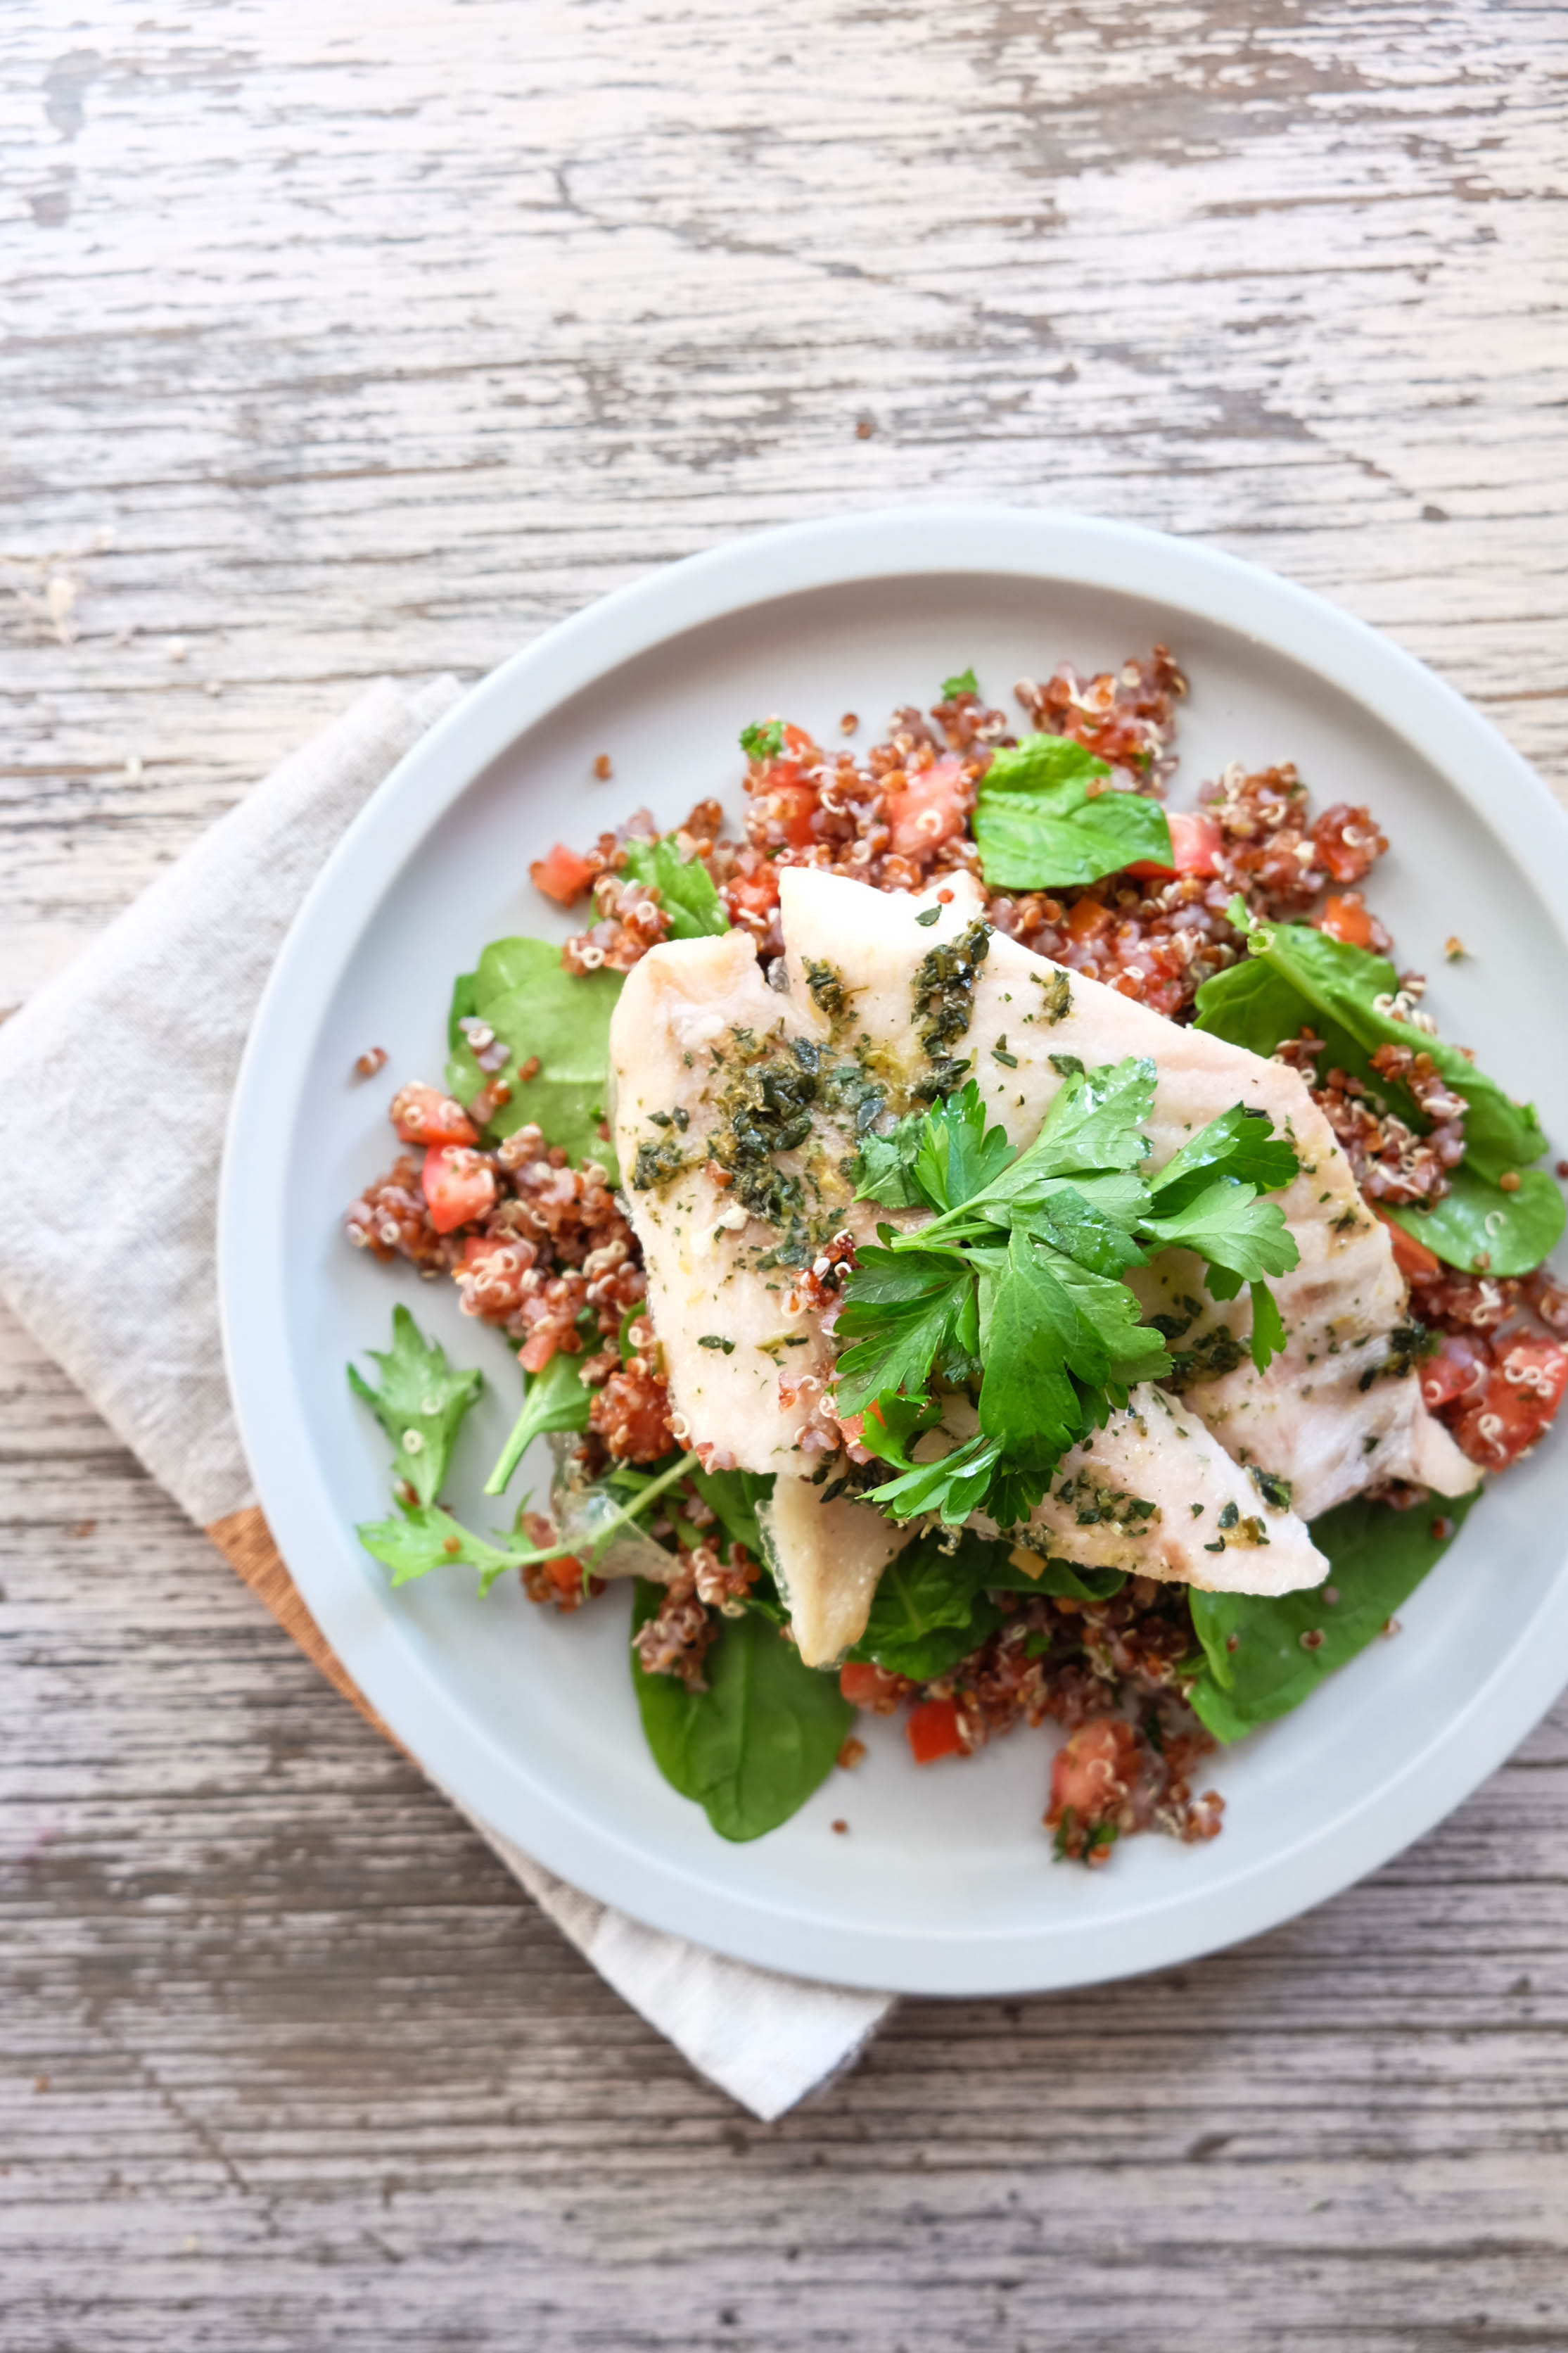 Eat Fit Food thyme and lemon chicken with quinoa